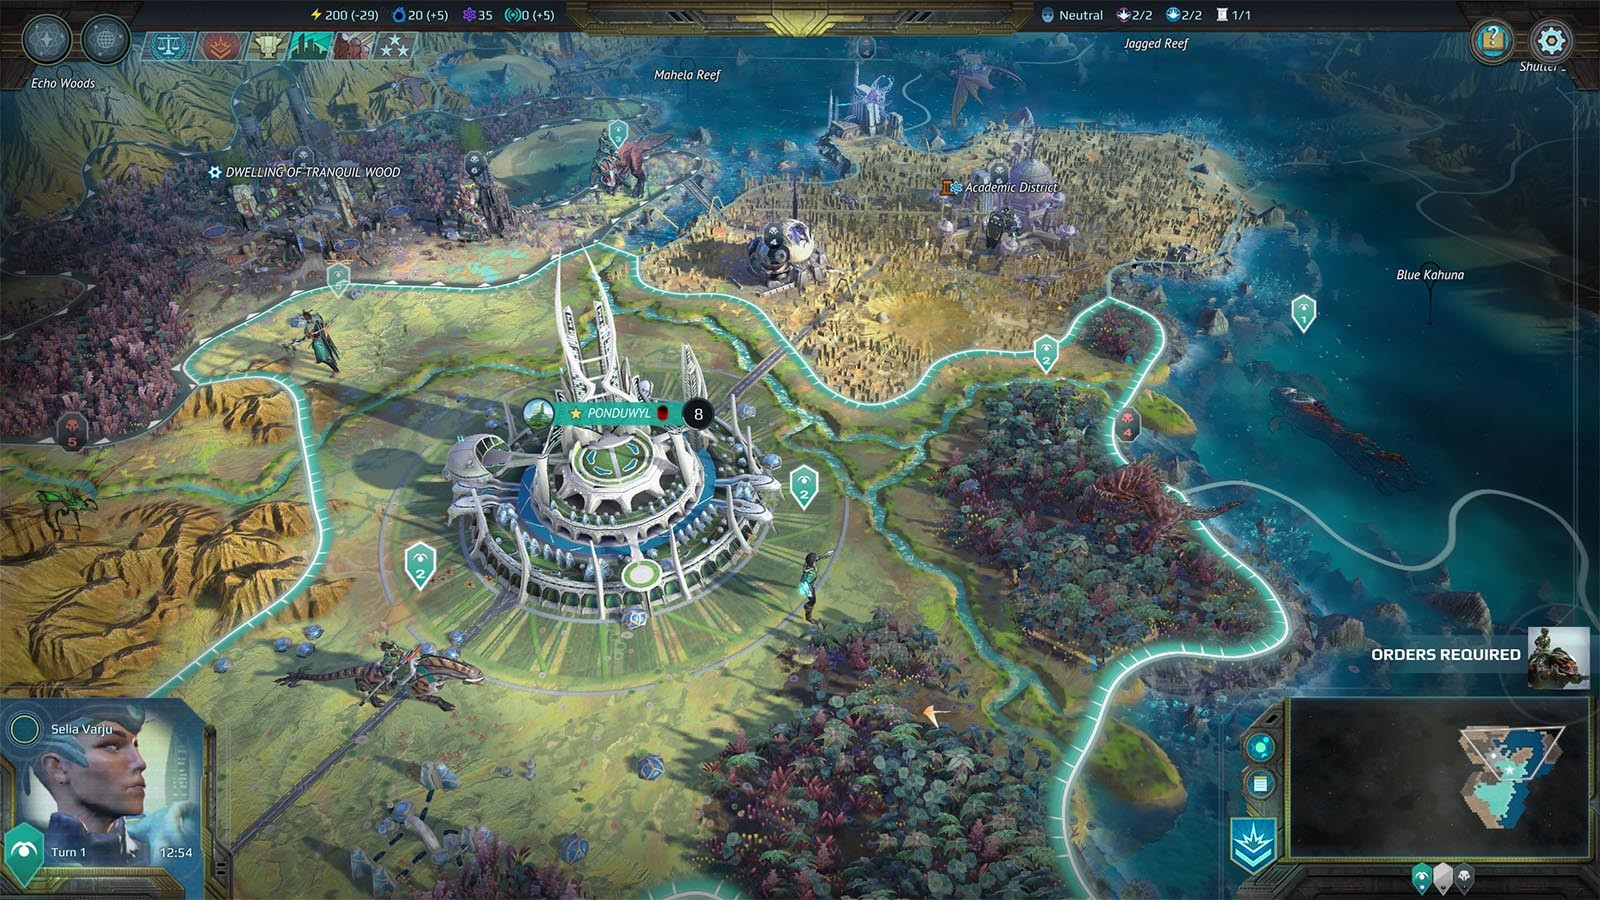 Age of Wonders: Planetfall Steam Key for PC - Buy now